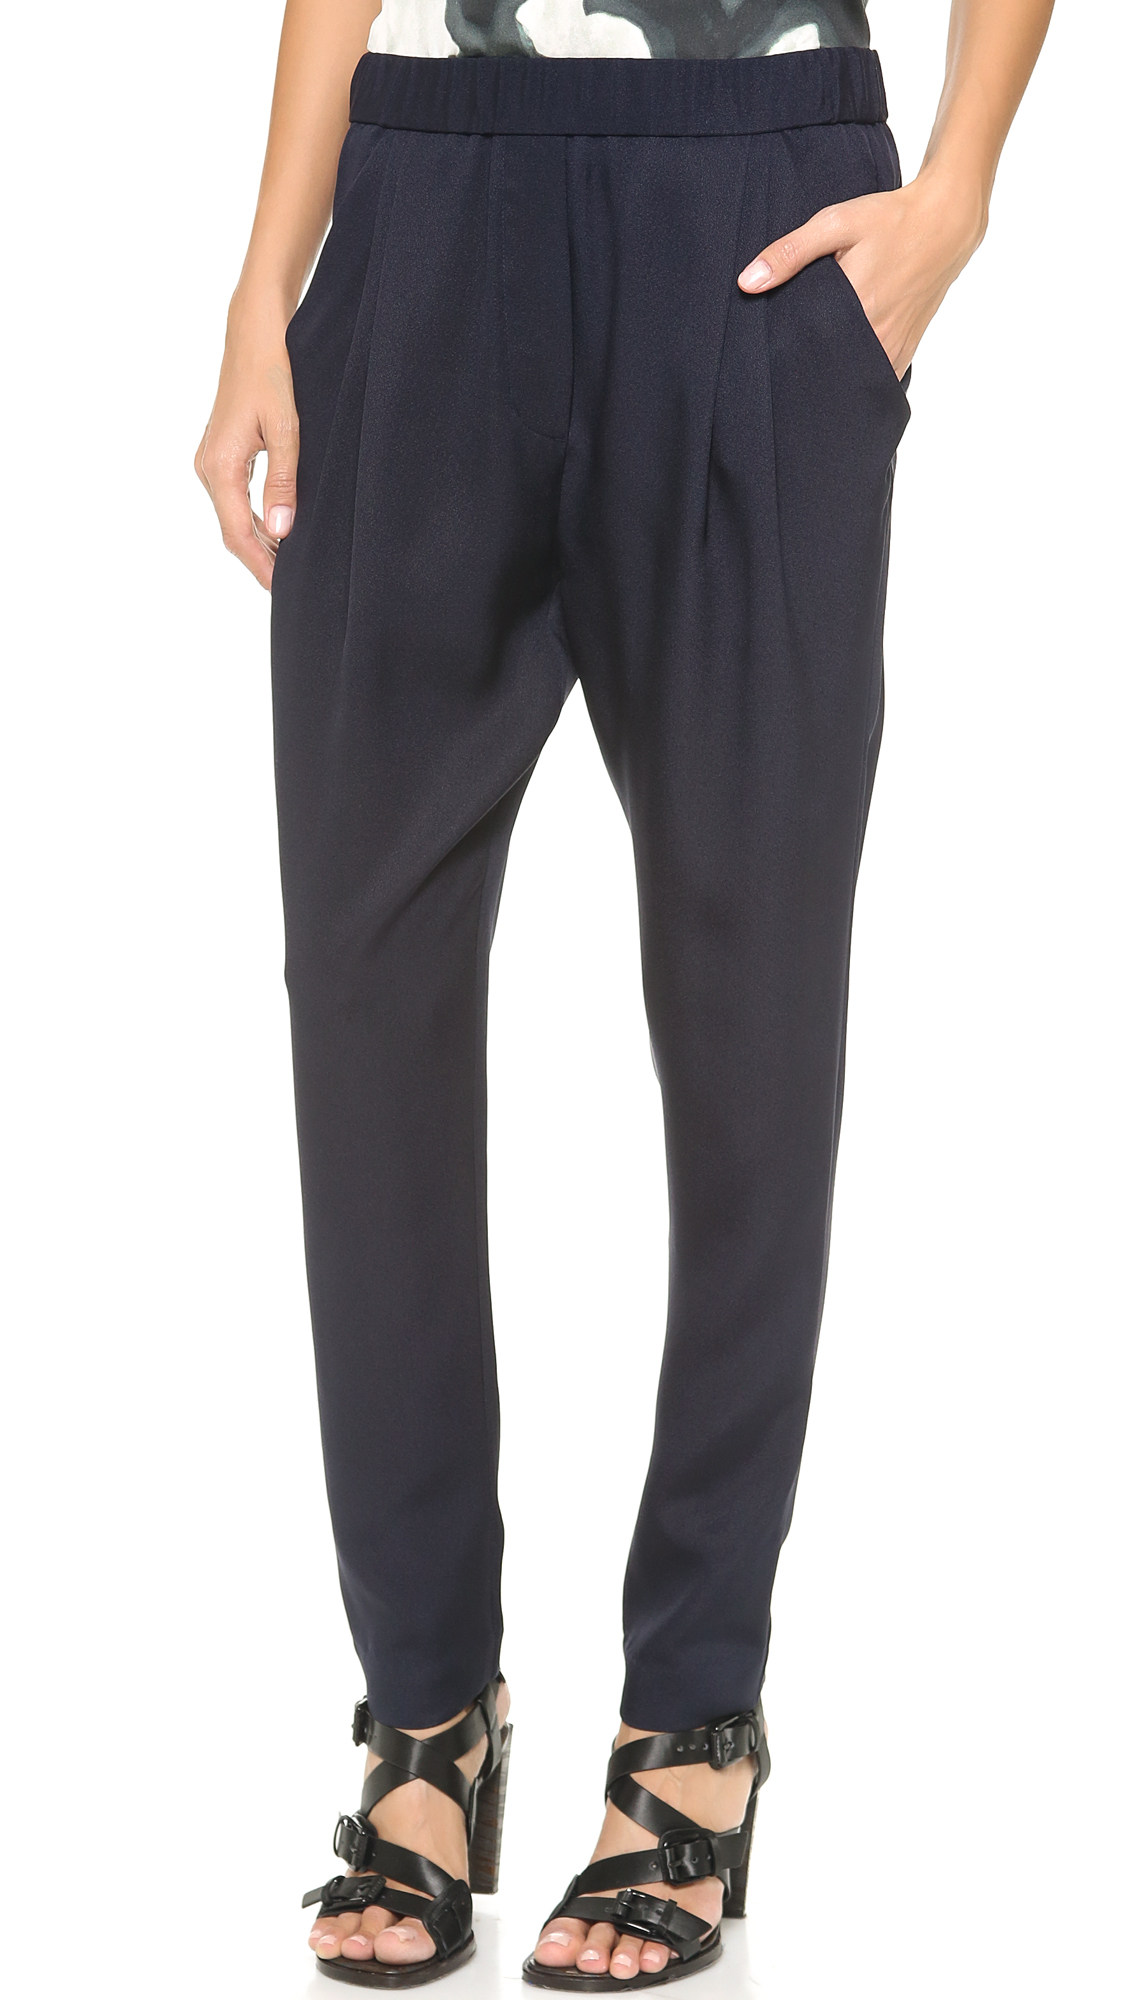 3.1 phillip lim Draped Pocket Trousers in Blue | Lyst